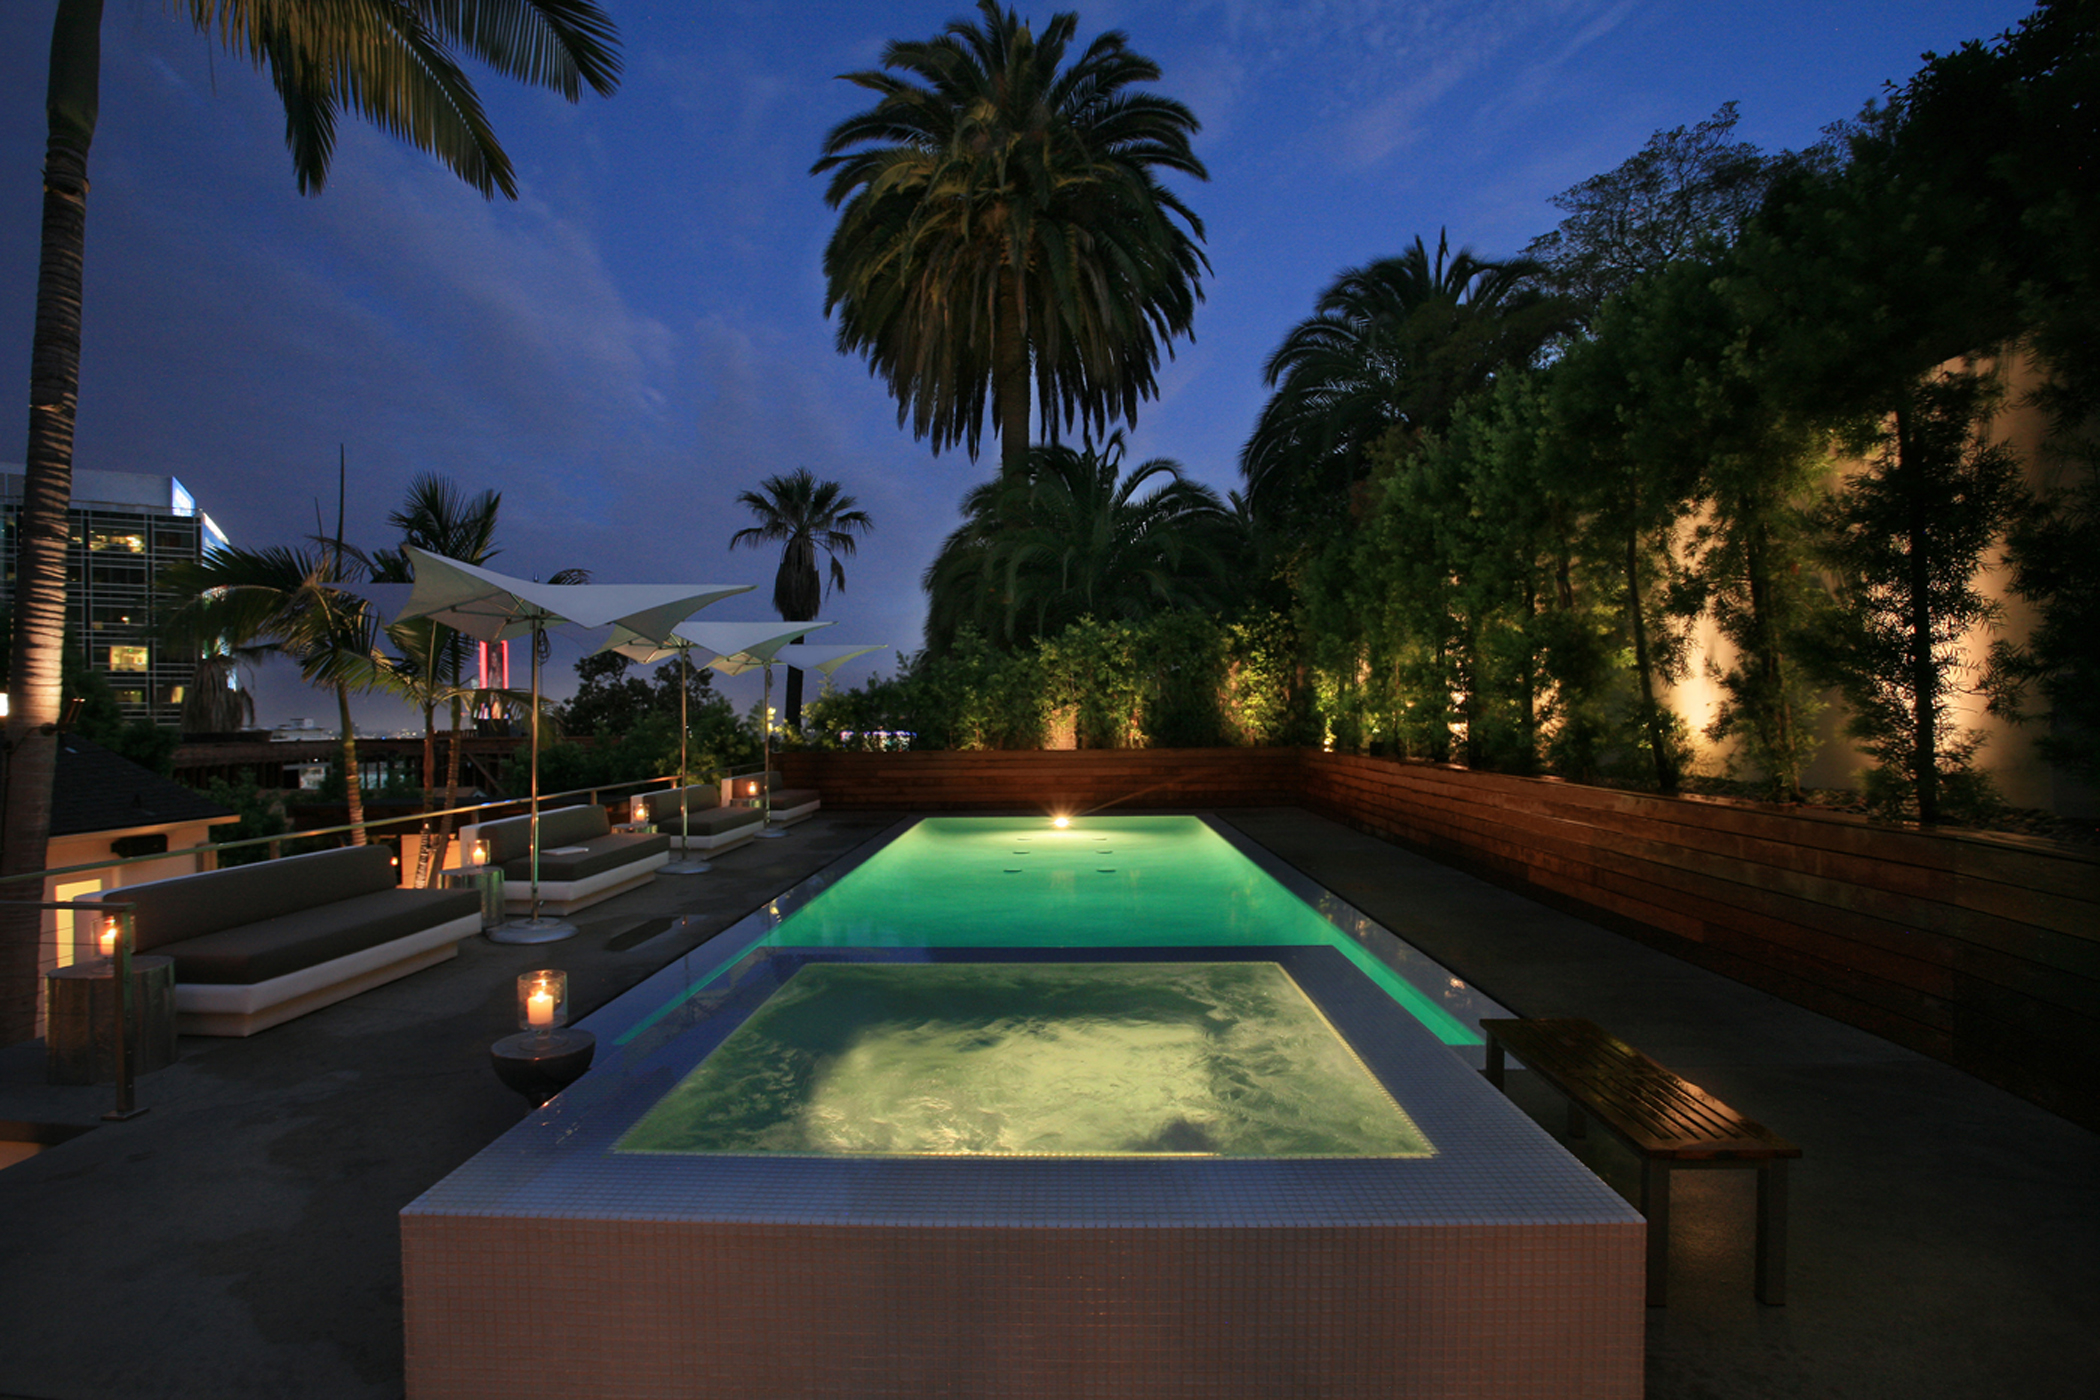 Luxe h2o infinity pool builders in beverly hills ca 90211 for Natural swimming pools los angeles